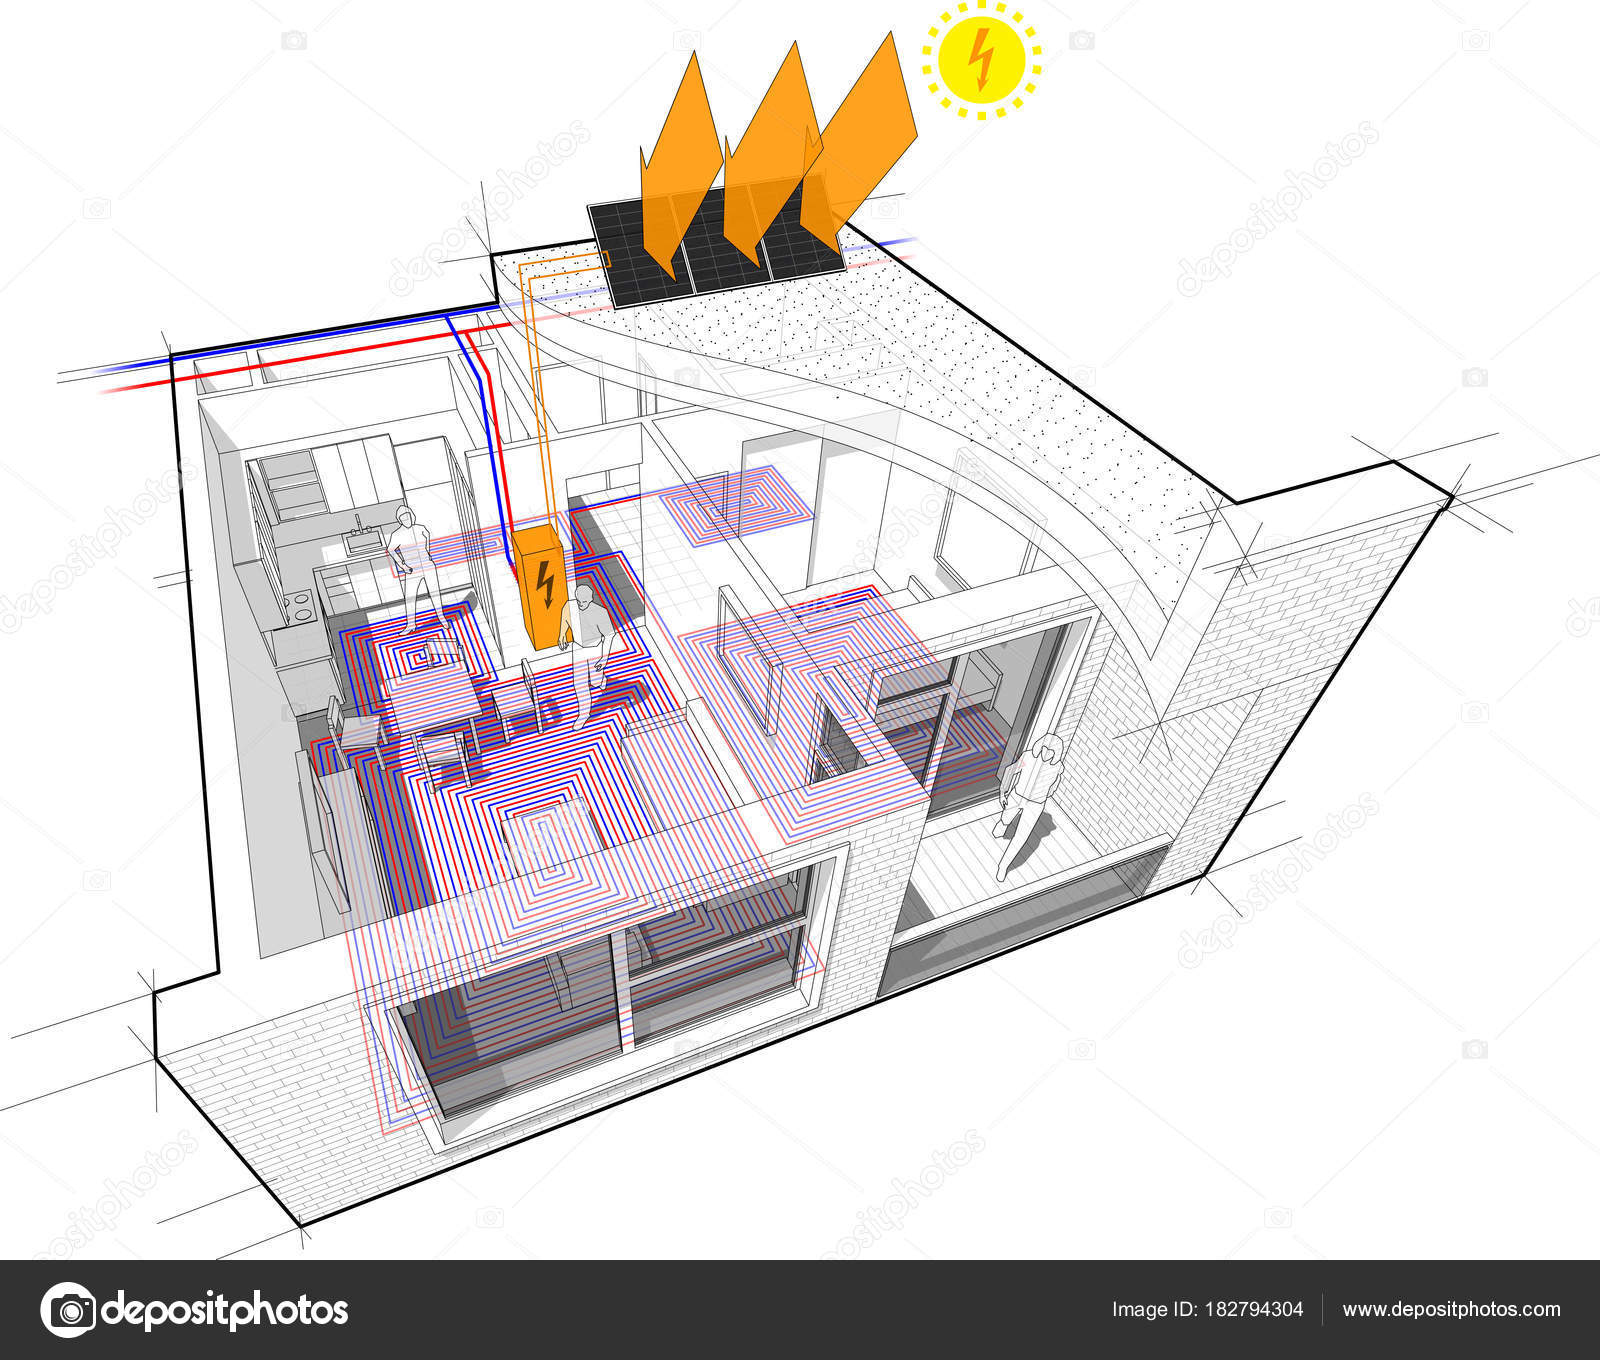 hight resolution of perspective cutaway diagram of a one bedroom apartment completely furnished with hot water floor heating and central heating pipes as source of heating